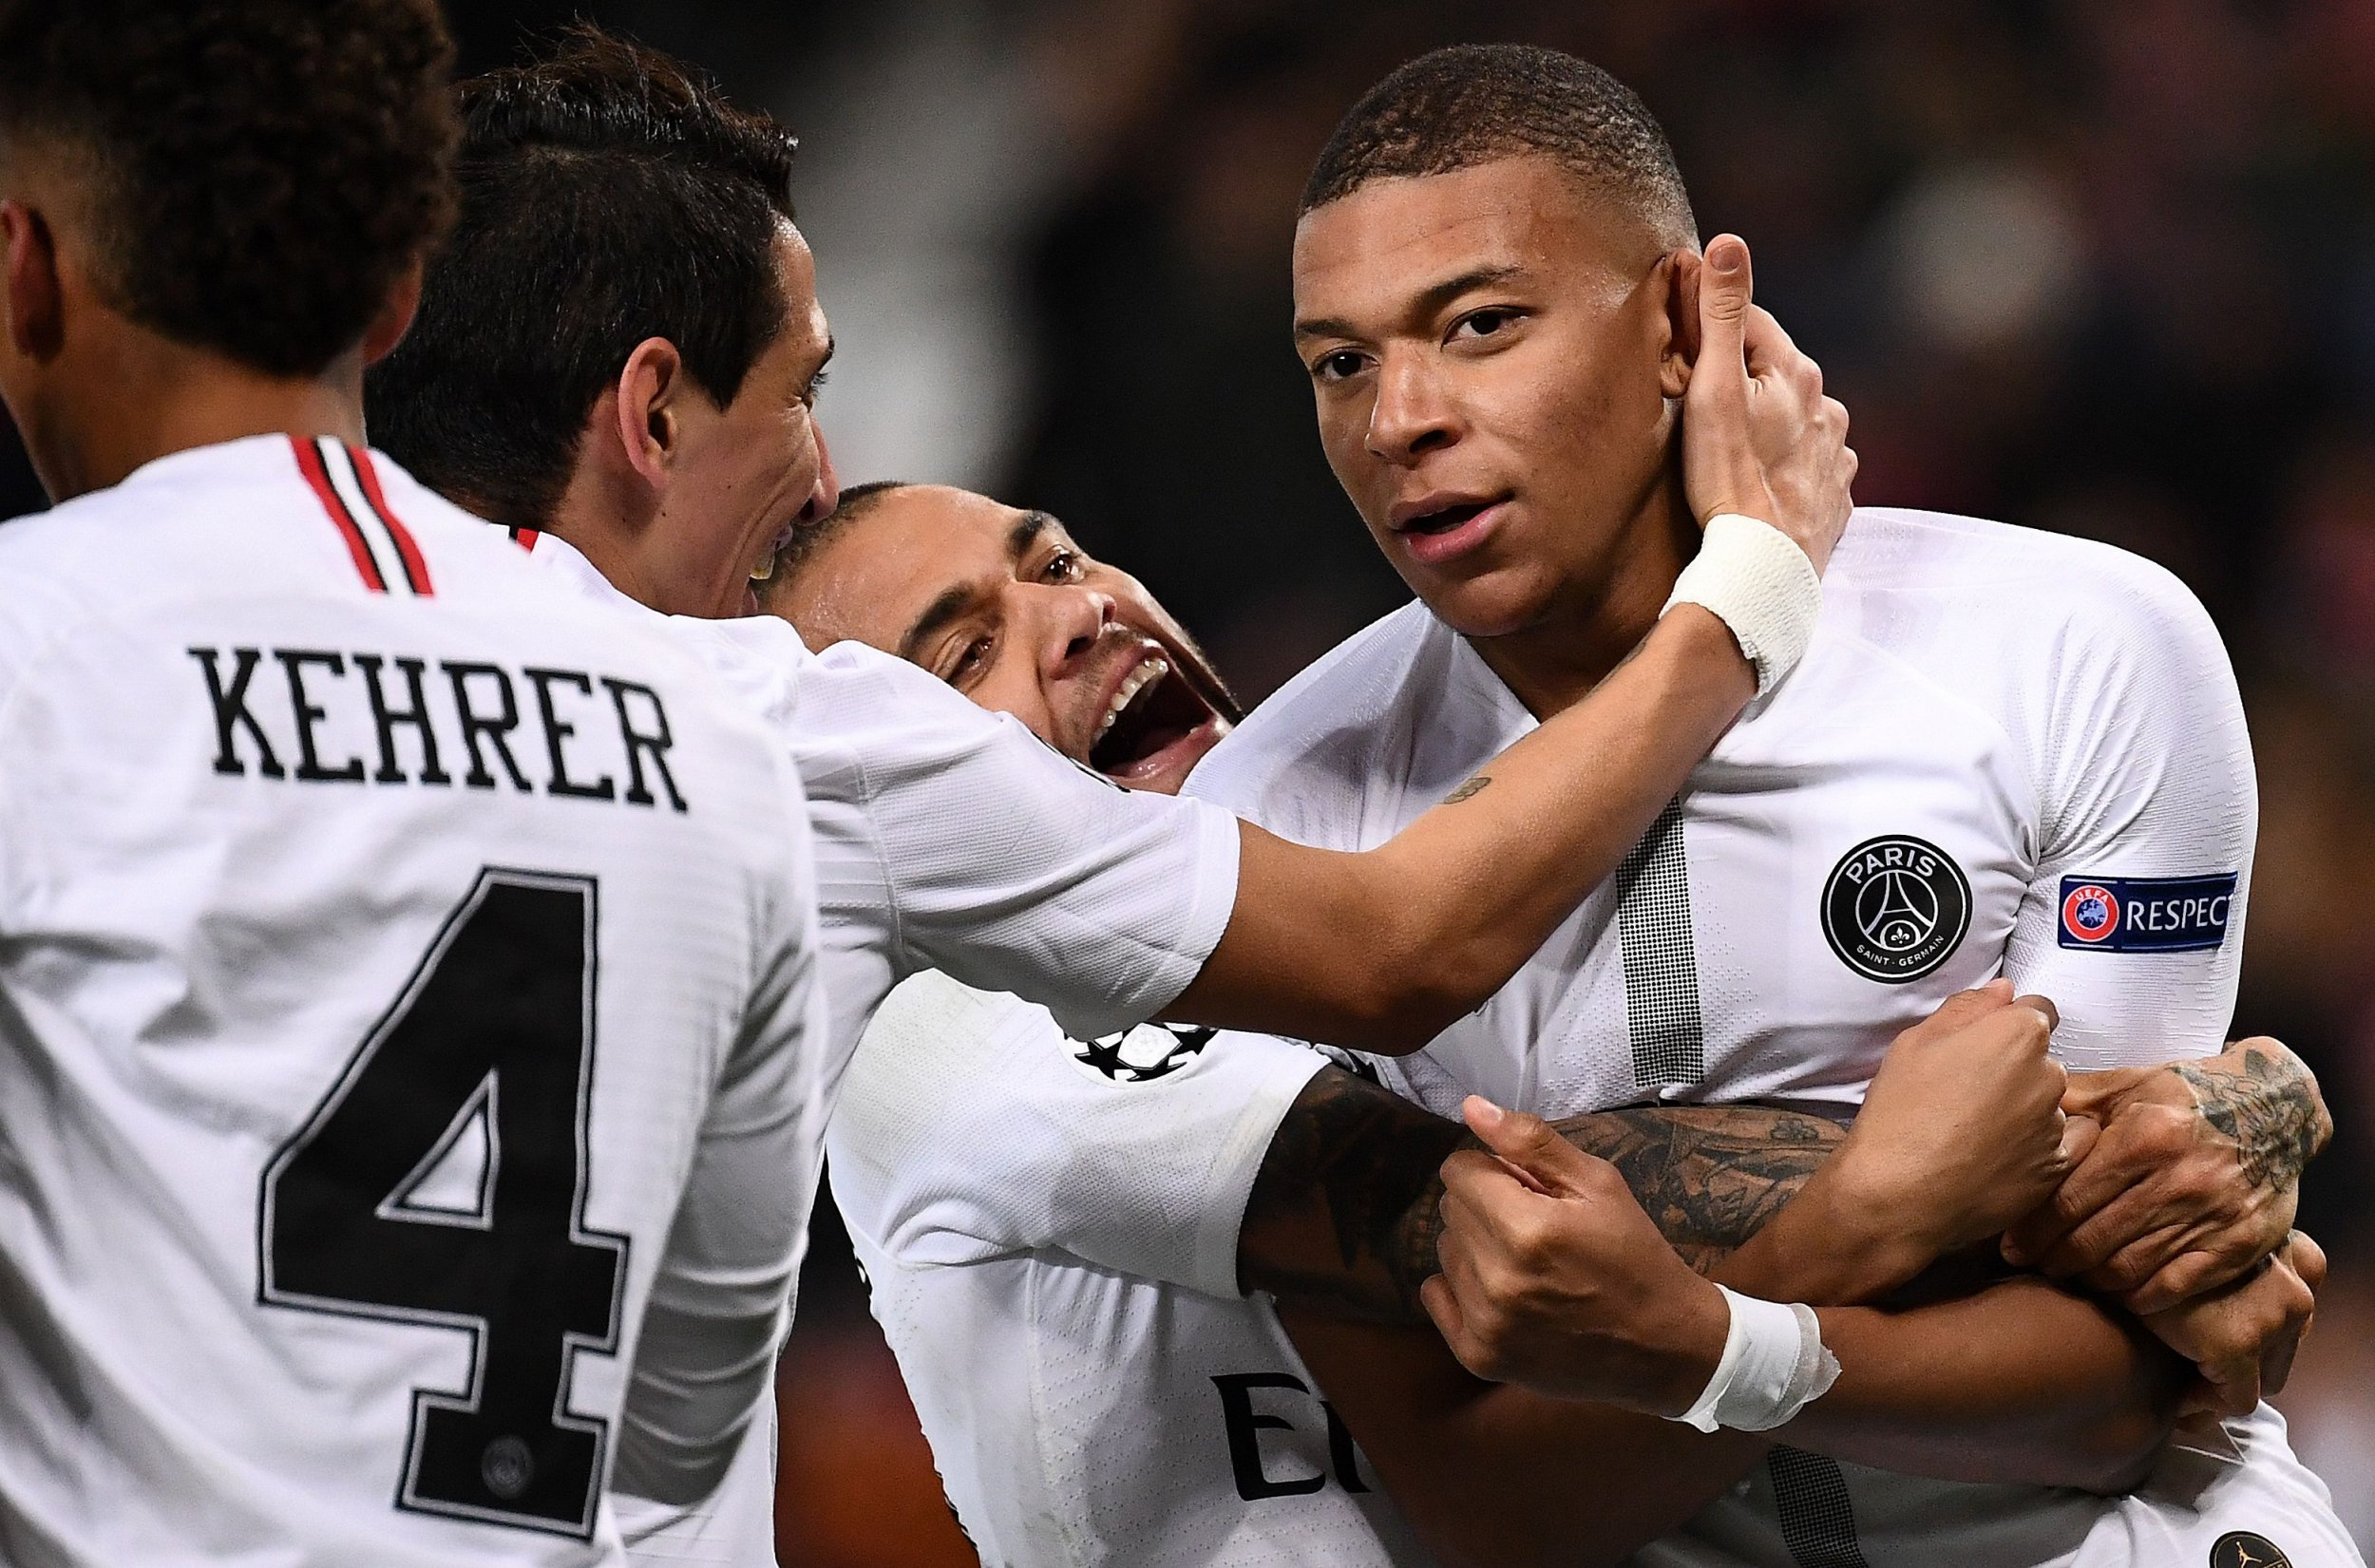 Paris Saint-Germain's French striker Kylian Mbappe (R) celebrates scoring his team's second goal during the first leg of the UEFA Champions League round of 16 football match between Manchester United and Paris Saint-Germain (PSG) at Old Trafford in Manchester, north-west England on February 12, 2019. (Photo by FRANCK FIFE / AFP)FRANCK FIFE/AFP/Getty Images